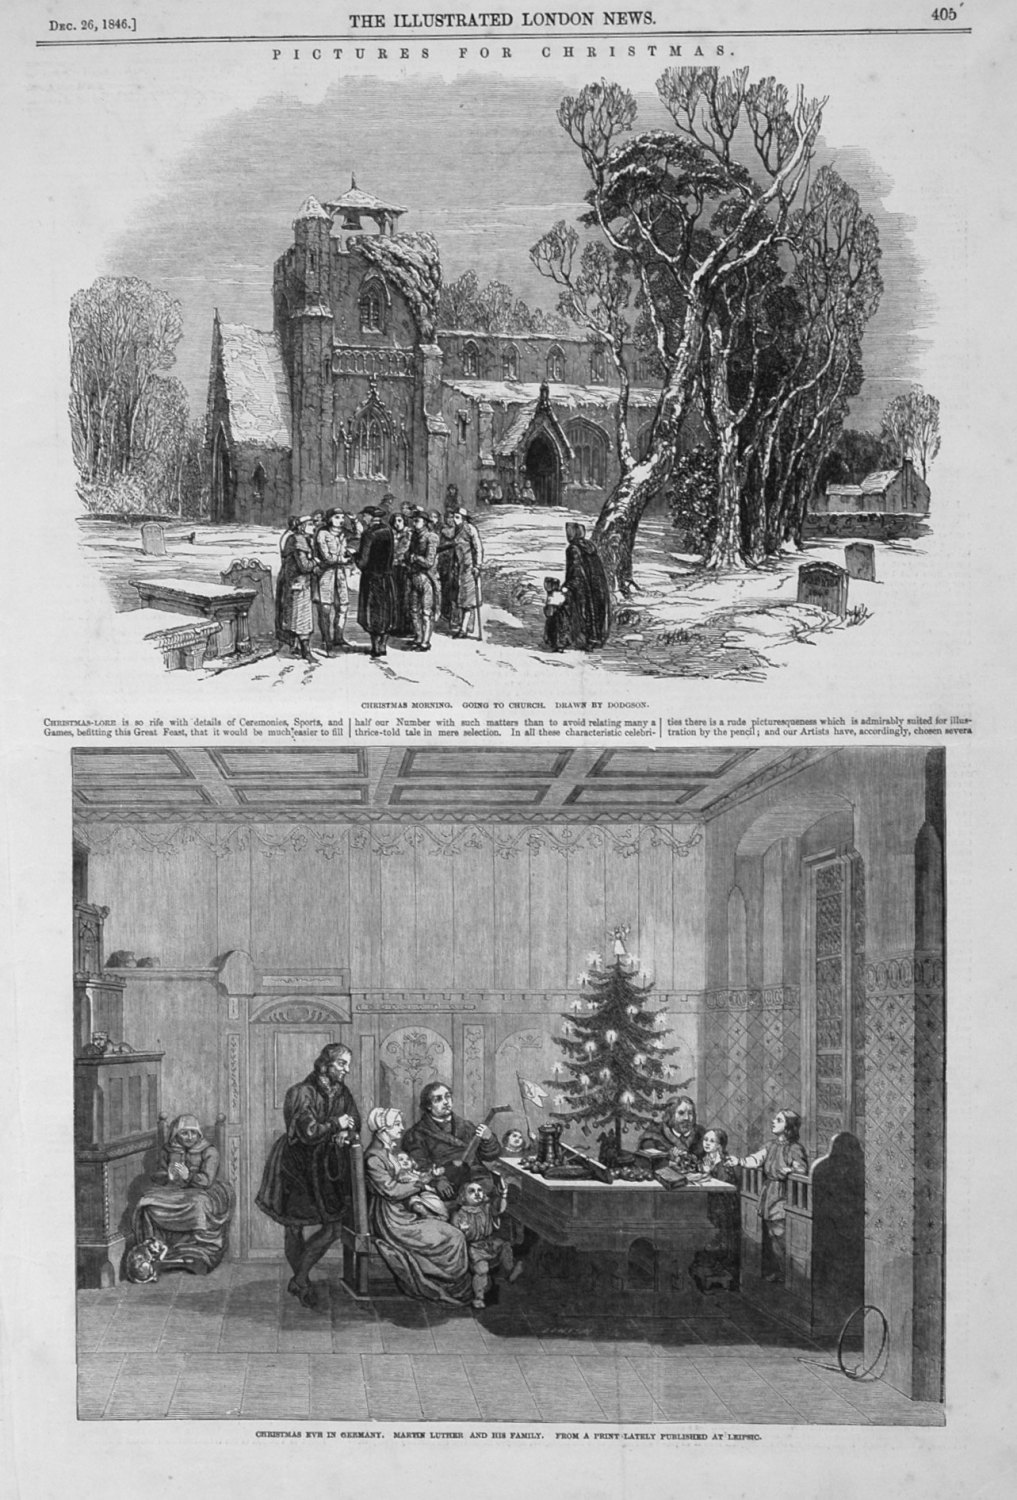 Pictures for Christmas. 1846